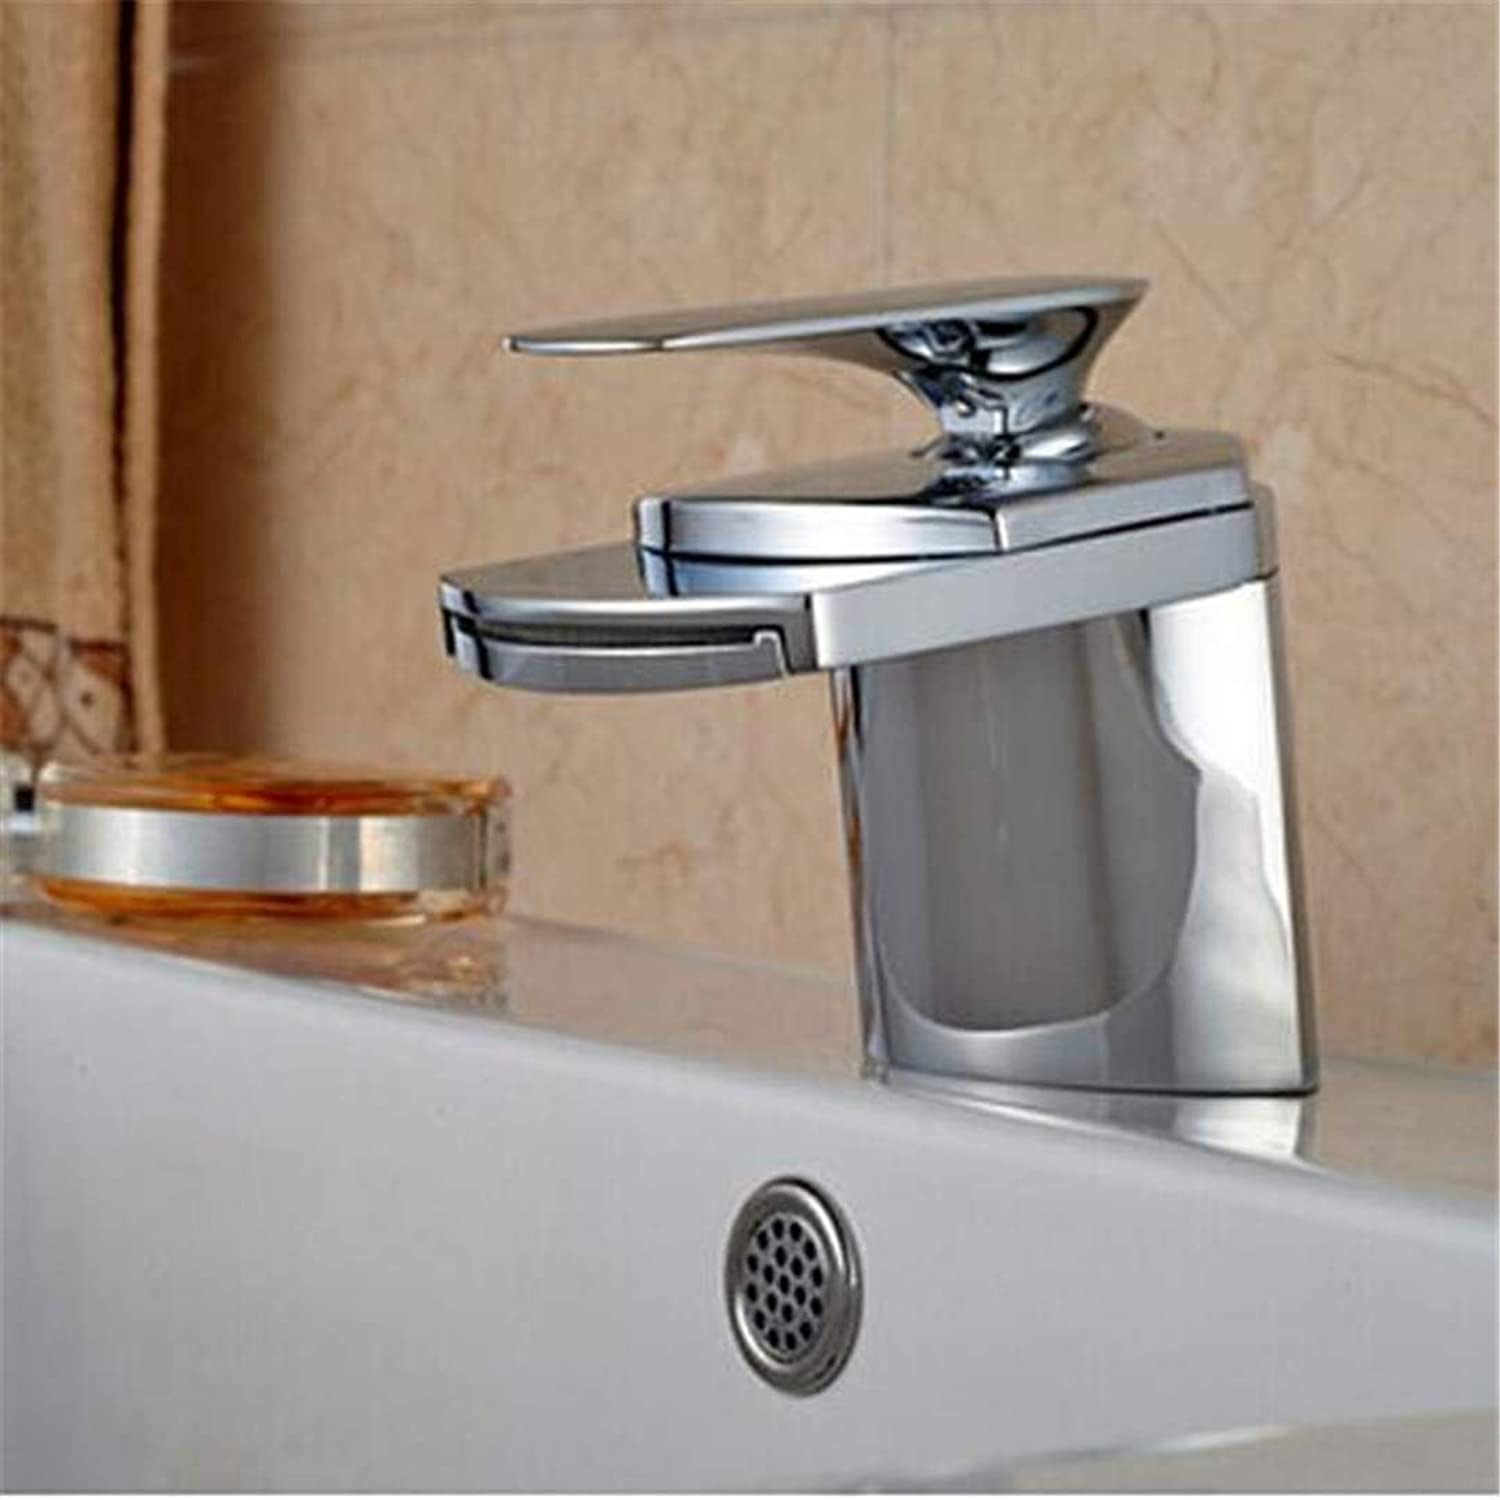 Oudan Bathroom Basin Faucet Kitchen Faucet Hot and Cold Taps Crosschrome Brass Big Waterfall Bathroom Faucet Deck Mounted Single Handle Hole Mixer Tap (color   -, Size   -)